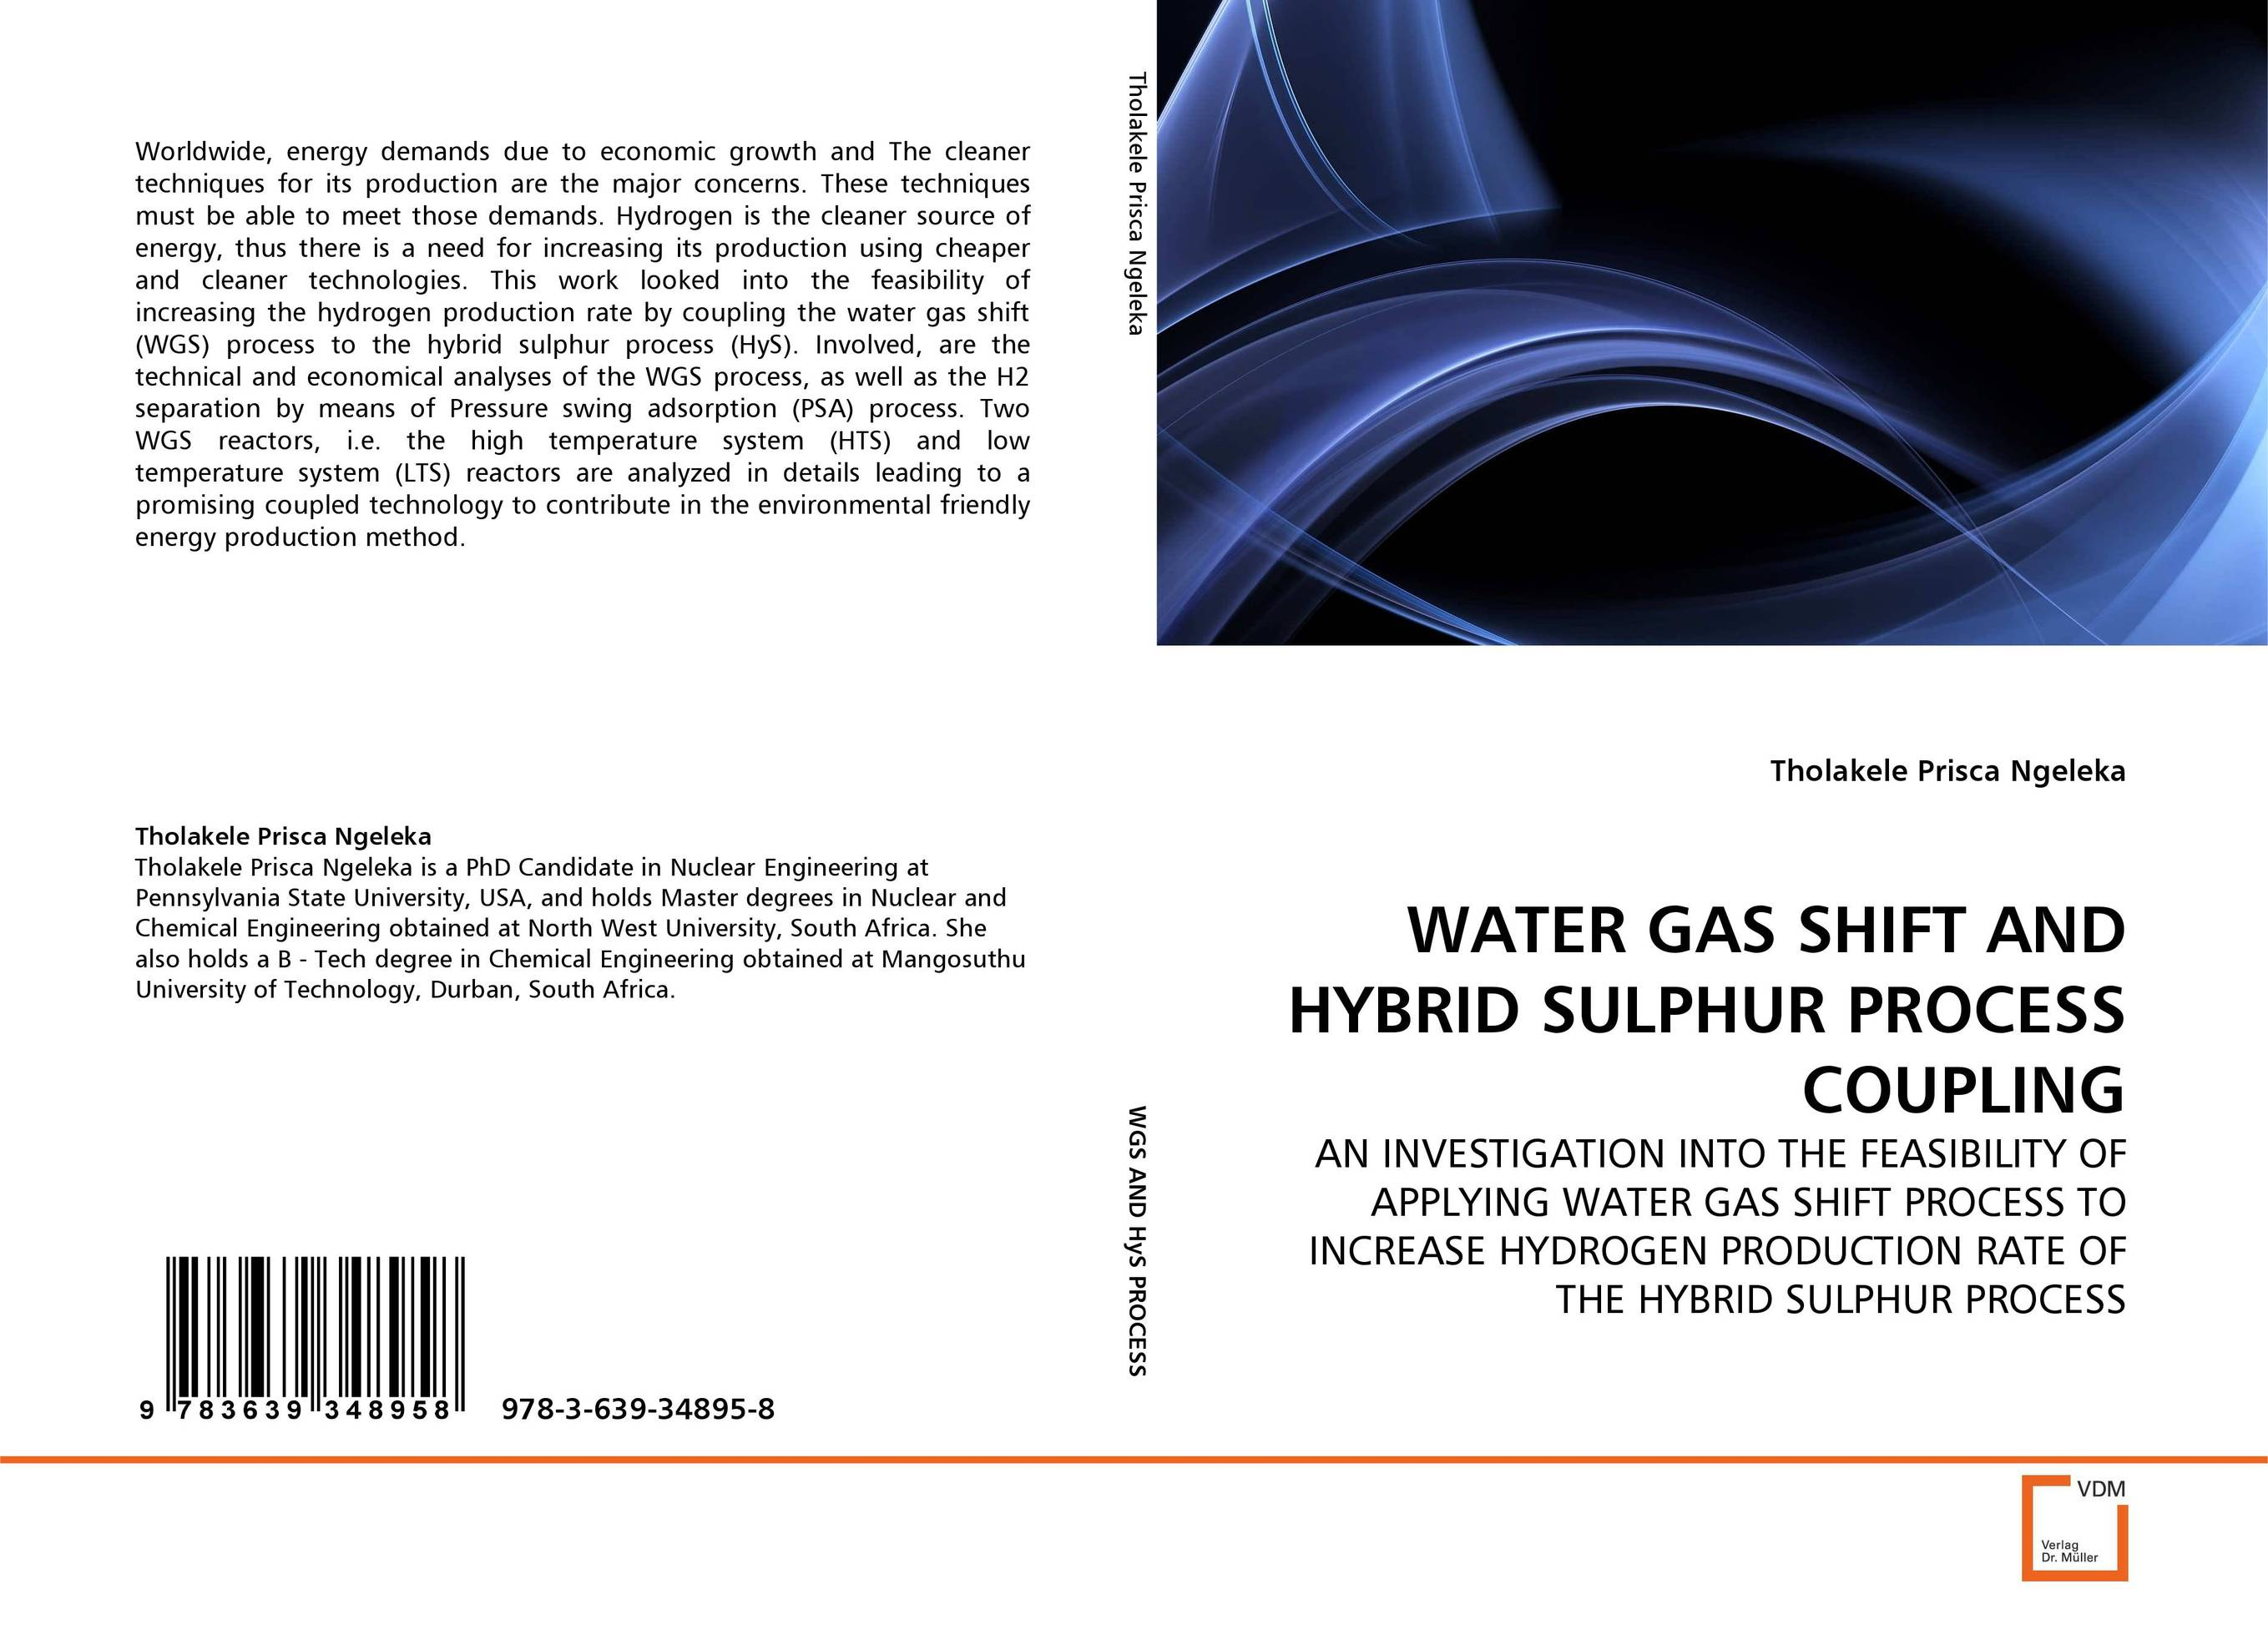 WATER GAS SHIFT AND HYBRID SULPHUR PROCESS COUPLING nify benny and c h sujatha enrichment of sulphur compounds in the cochin estuarine system